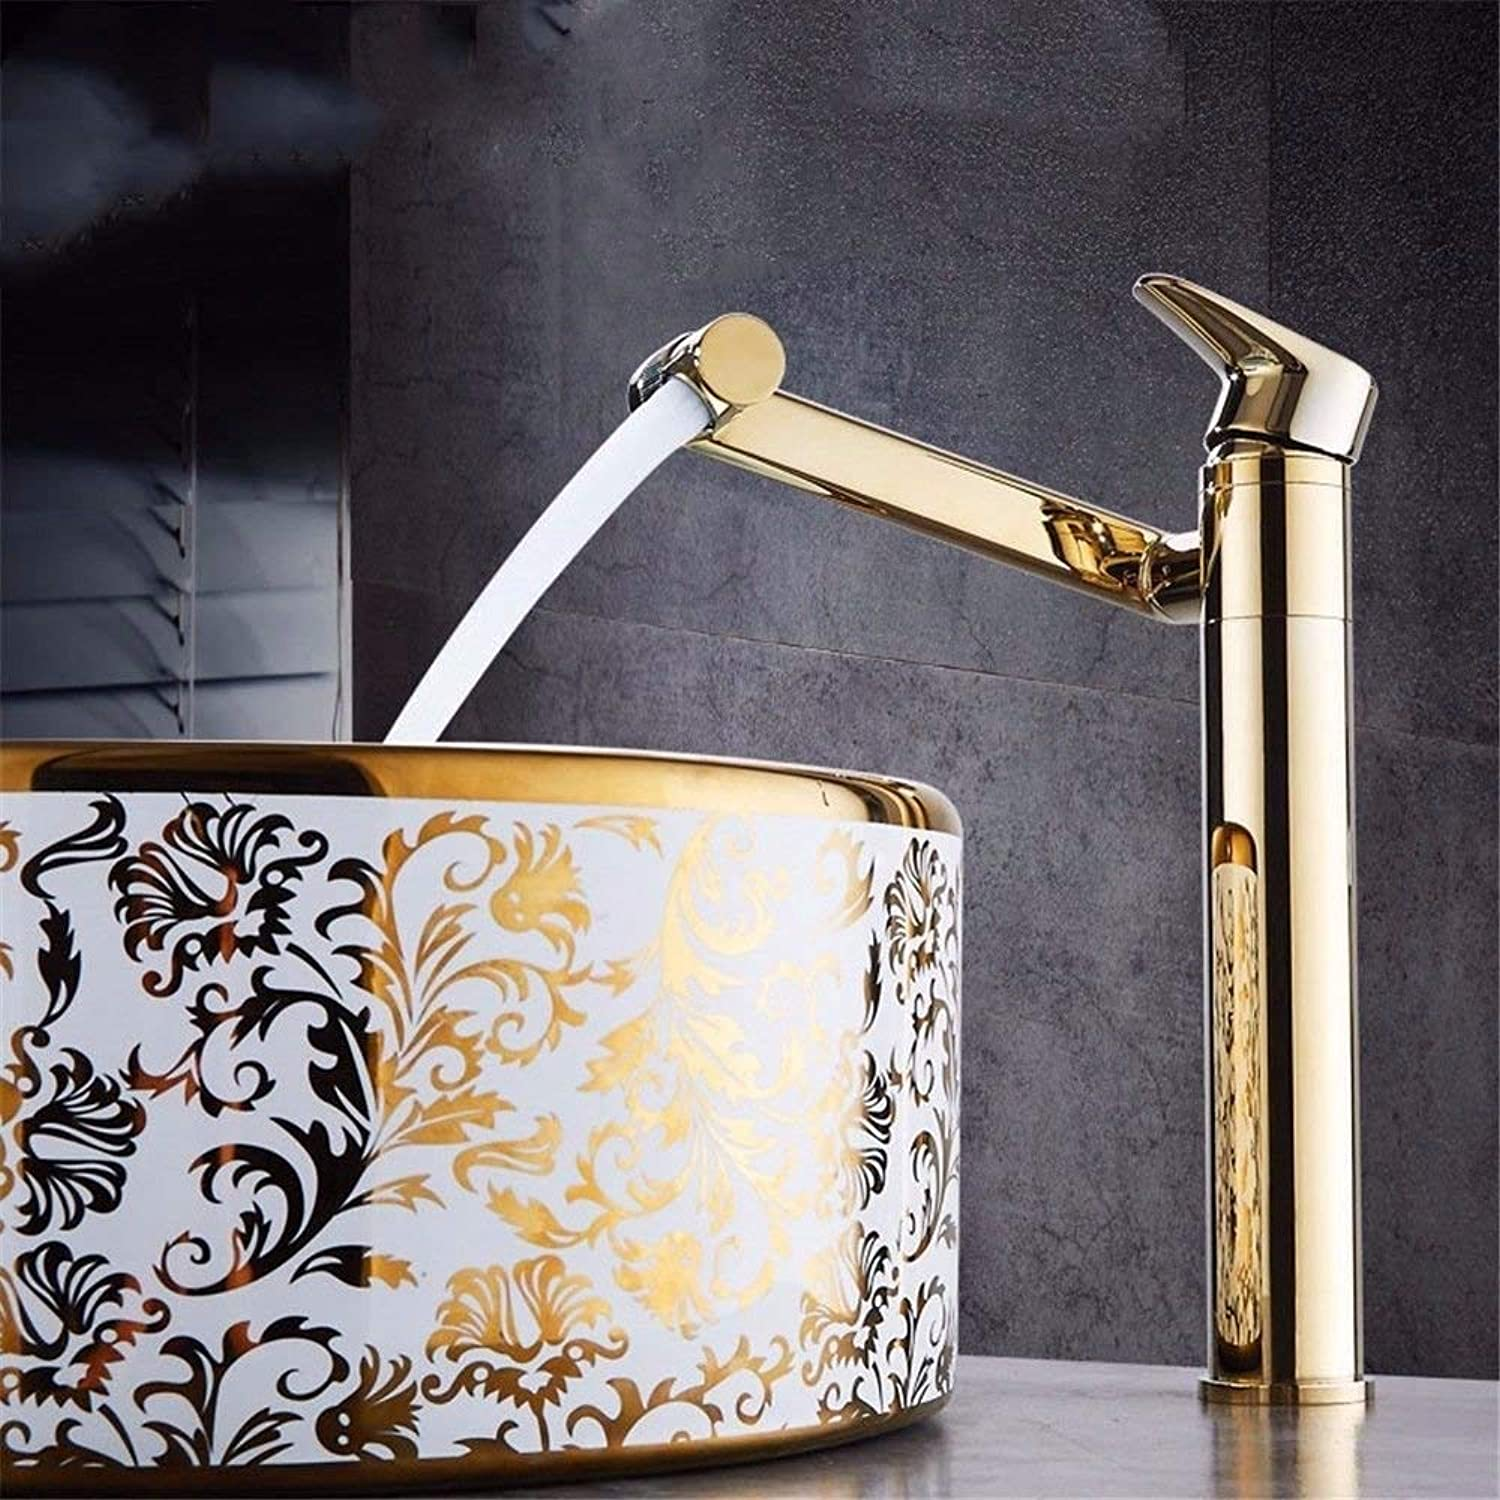 Oudan Kitchen taps solid brass kitchen sink basin mixer tap hot and cold water sink faucet with spout redating gold (color   -, Size   -)